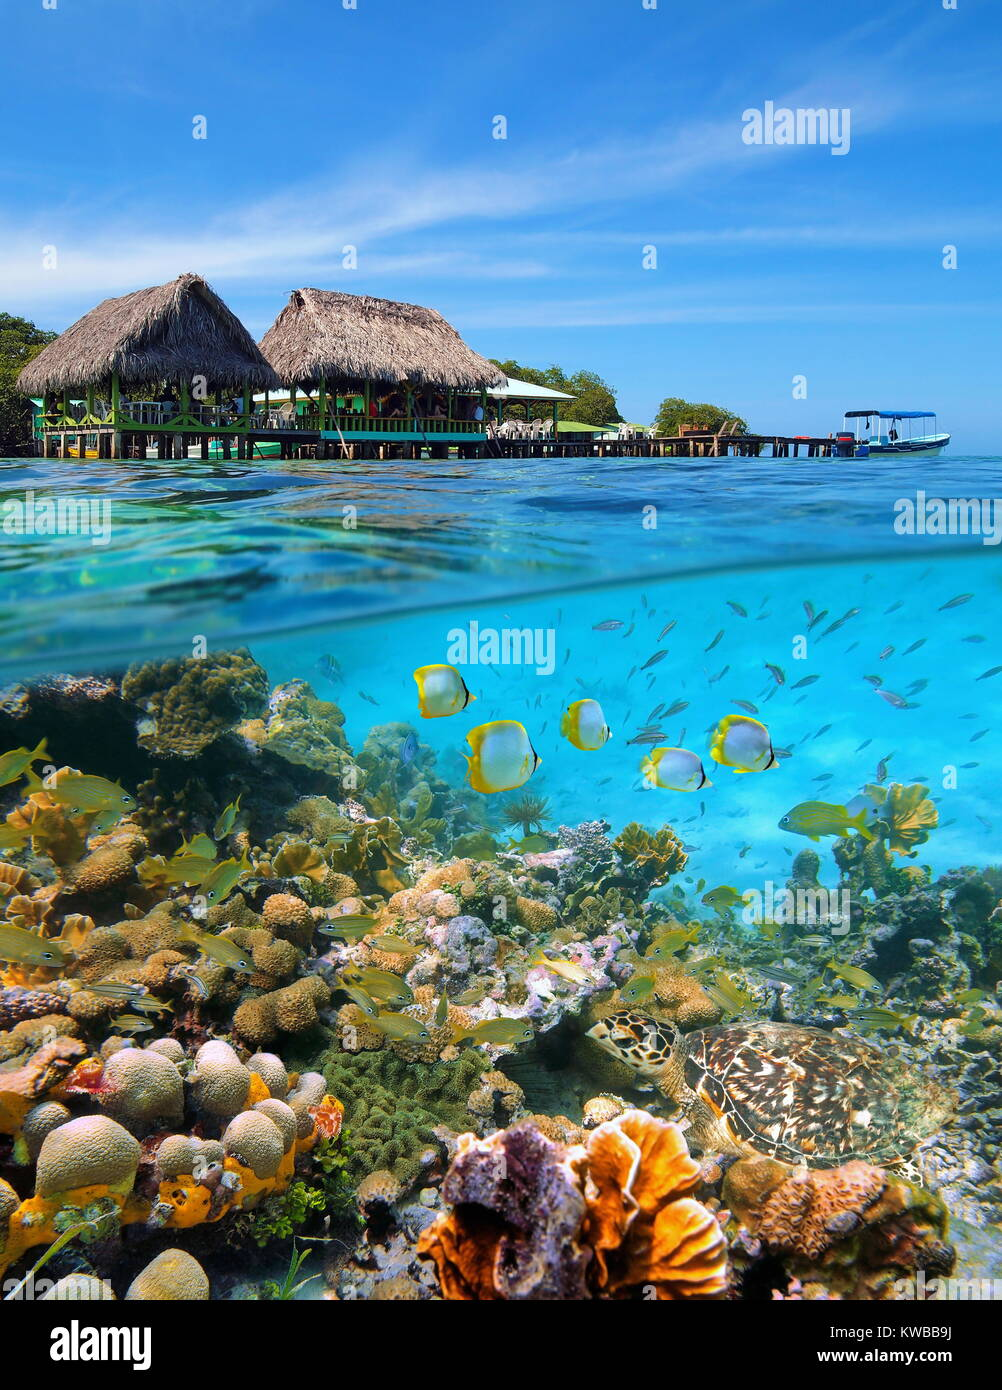 A tropical restaurant with thatched huts over the water and a thriving coral reef with fishes and a sea turtle underwater, Caribbean sea, Panama Stock Photo